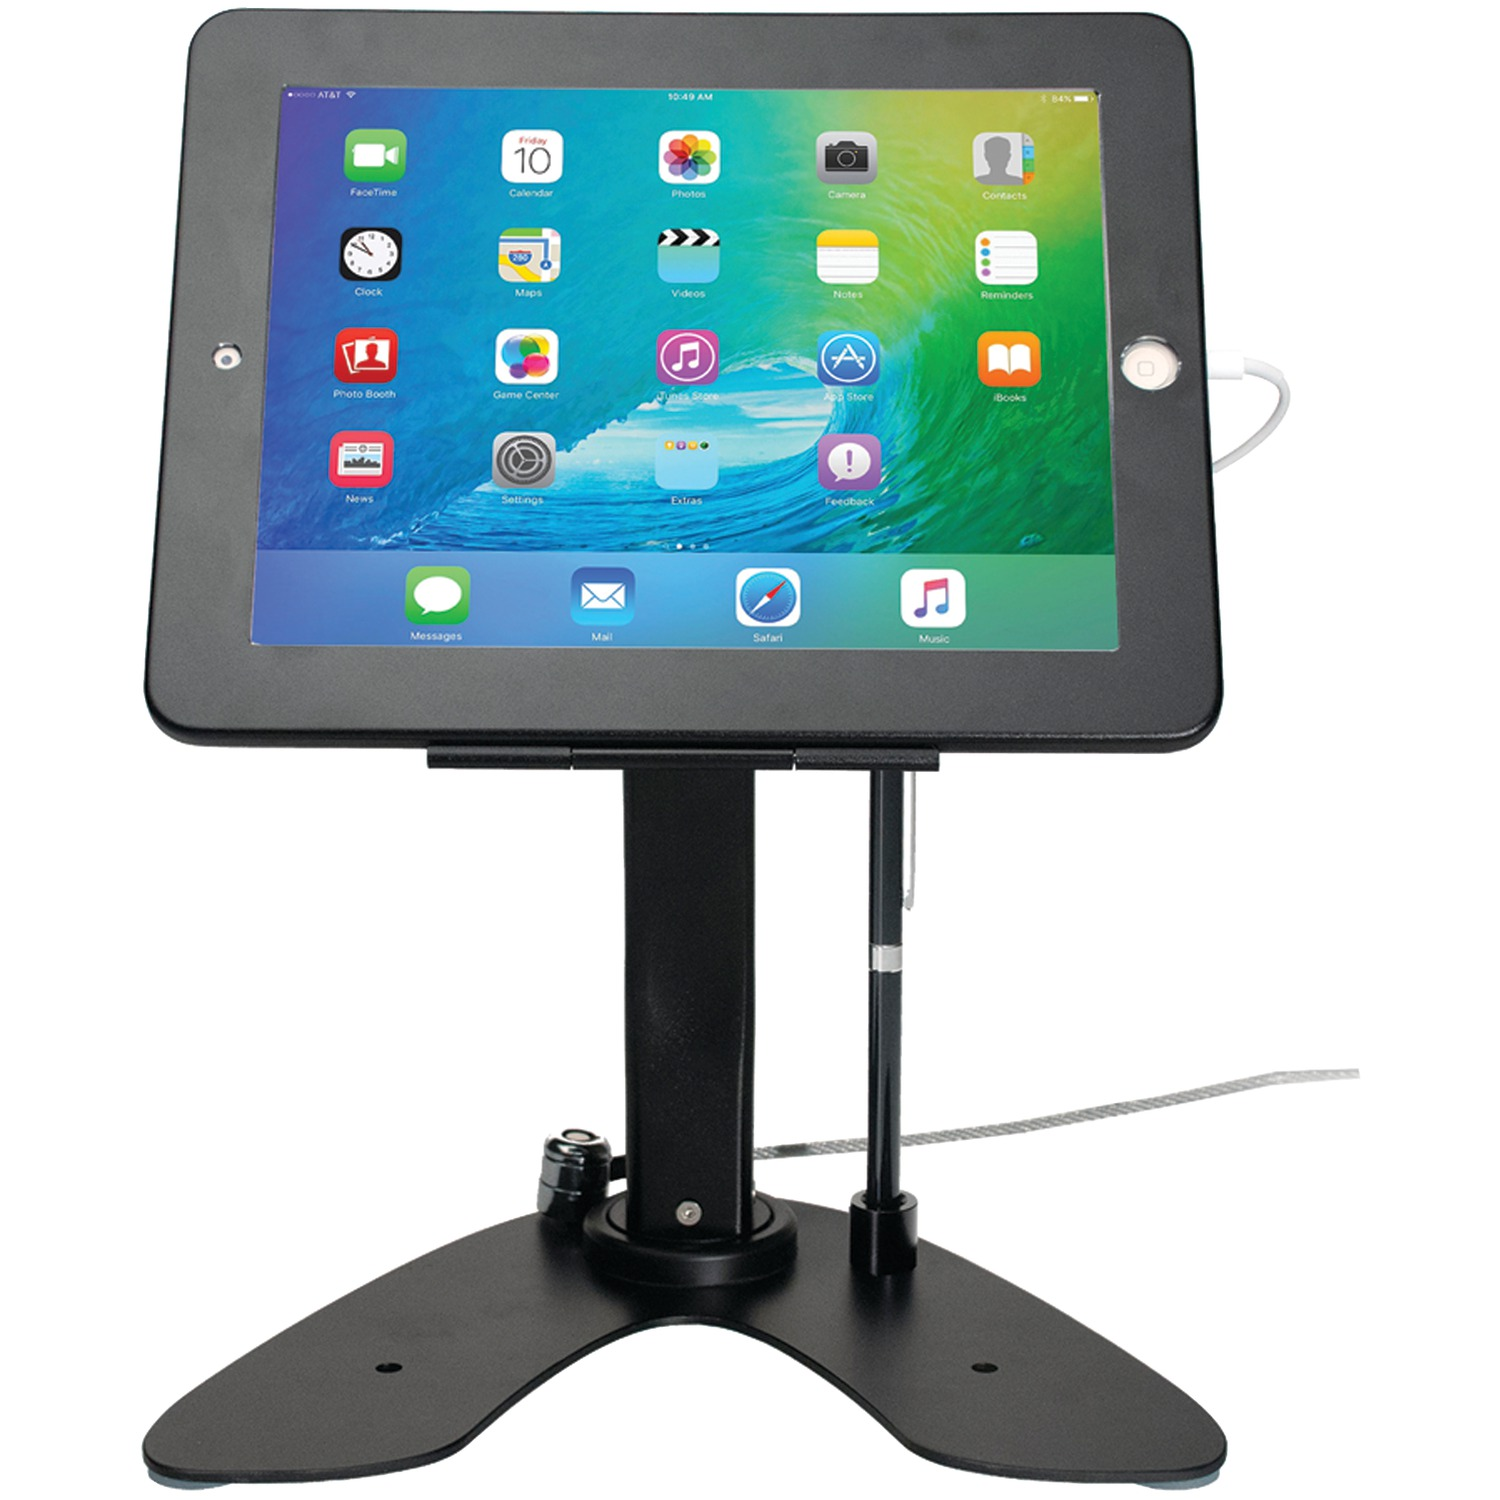 CTA Digital PAD-ASKB iPad/iPad Air Dual Security Kiosk Stand with Locking Case & Cable